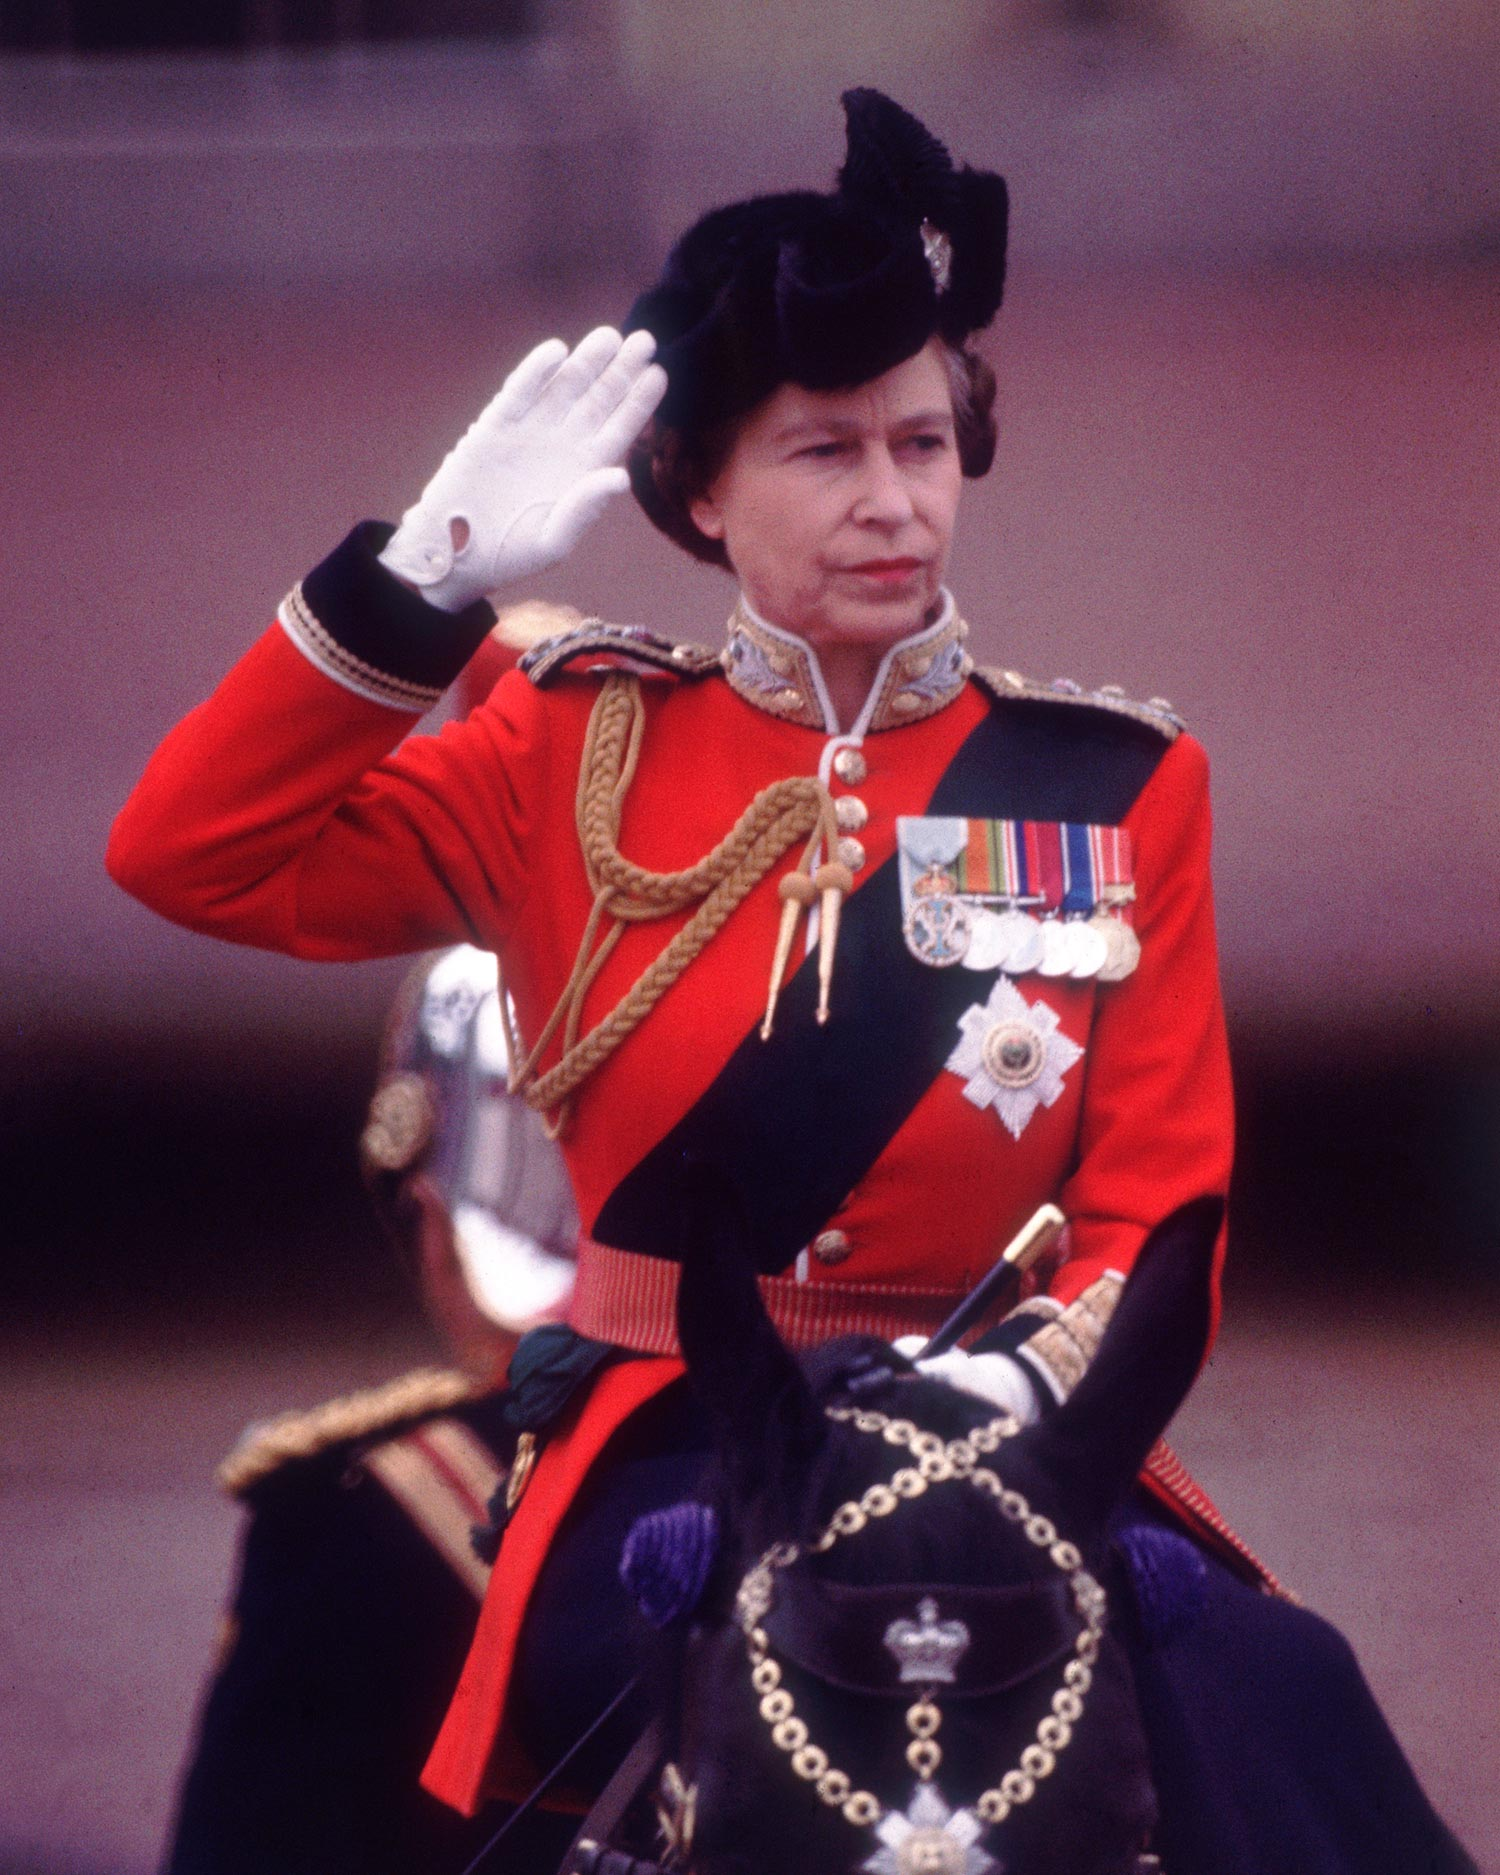 1979: Queen Elizabeth II takes the salute during the Trooping the Colour ceremony in London. (Photo by Keystone/Getty Images)